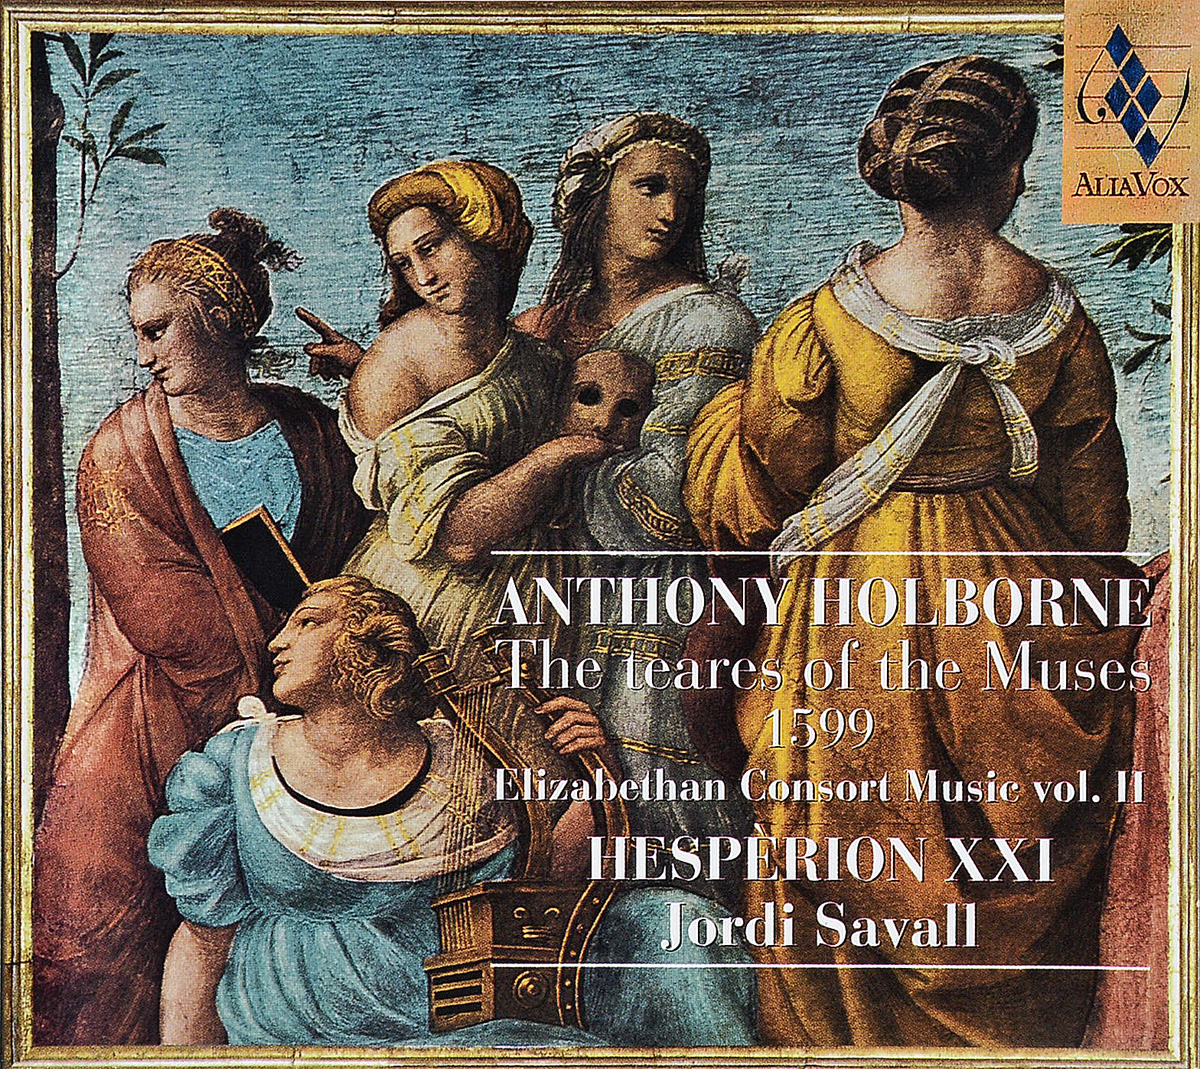 Zakazat.ru Hesperion XXI, Jordi Savall. Anthony Holborne. The Teares of the Muses